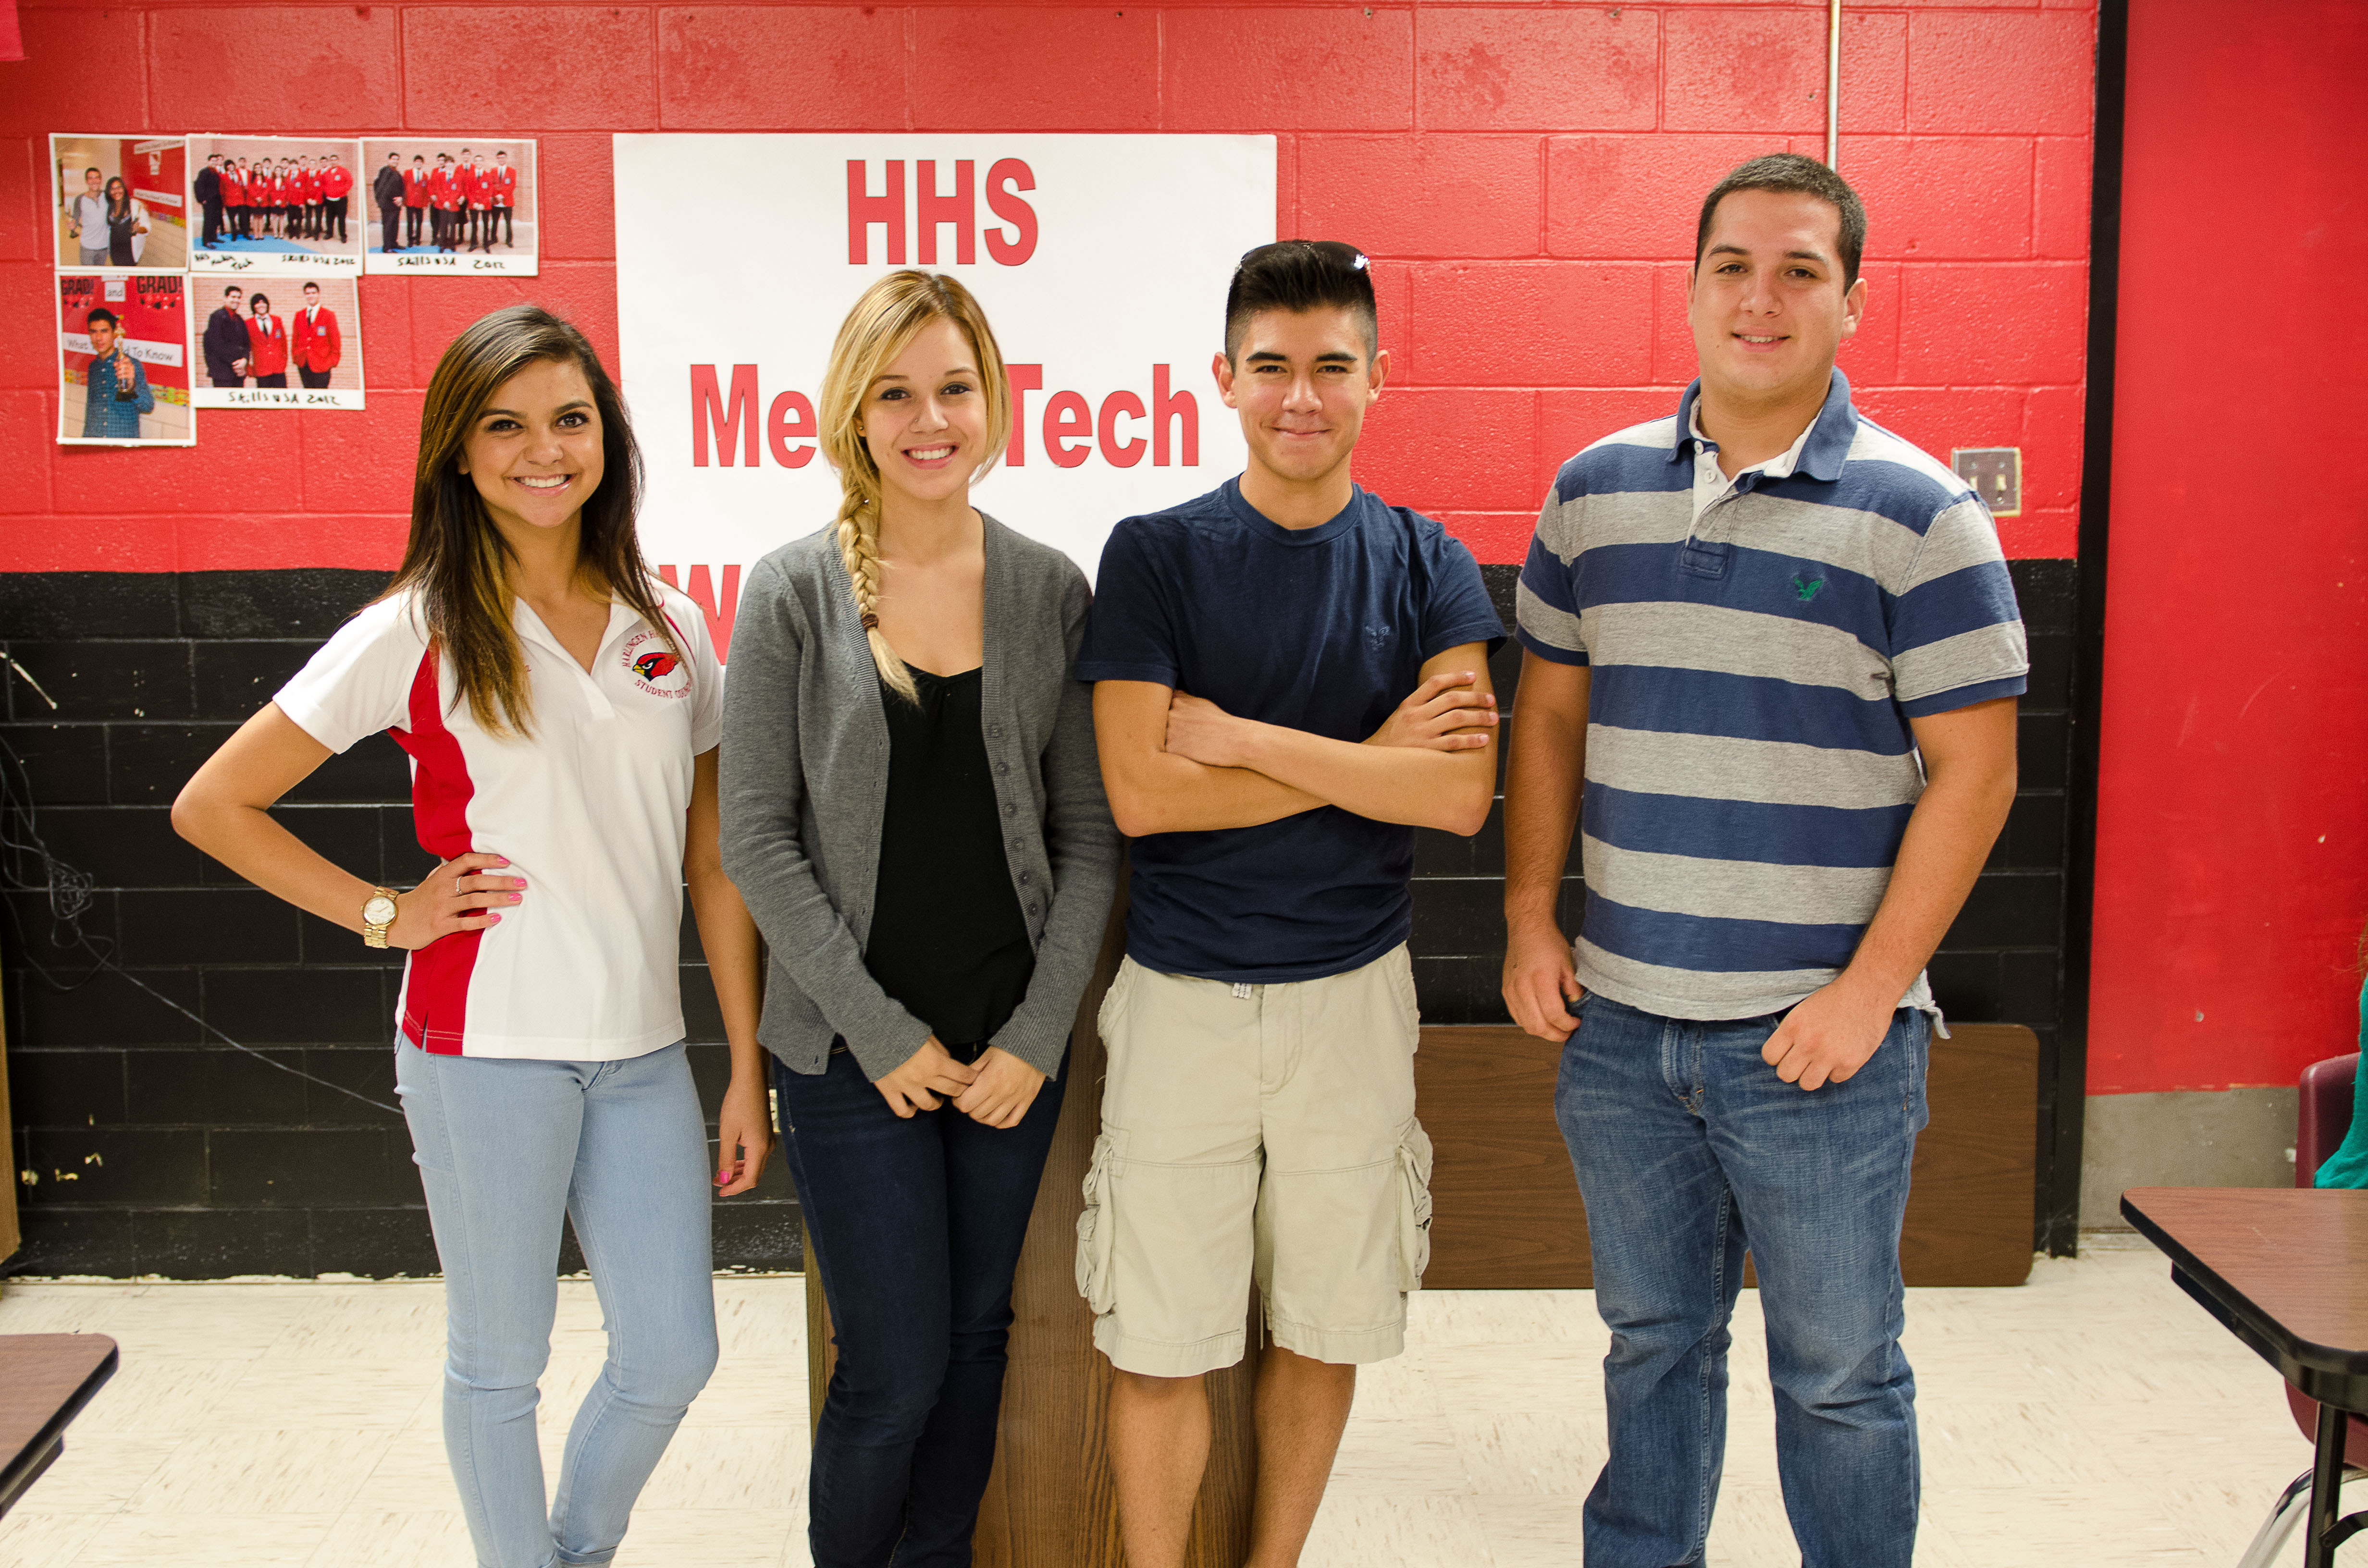 HHS Media Tech students win Channel 5 Showcase